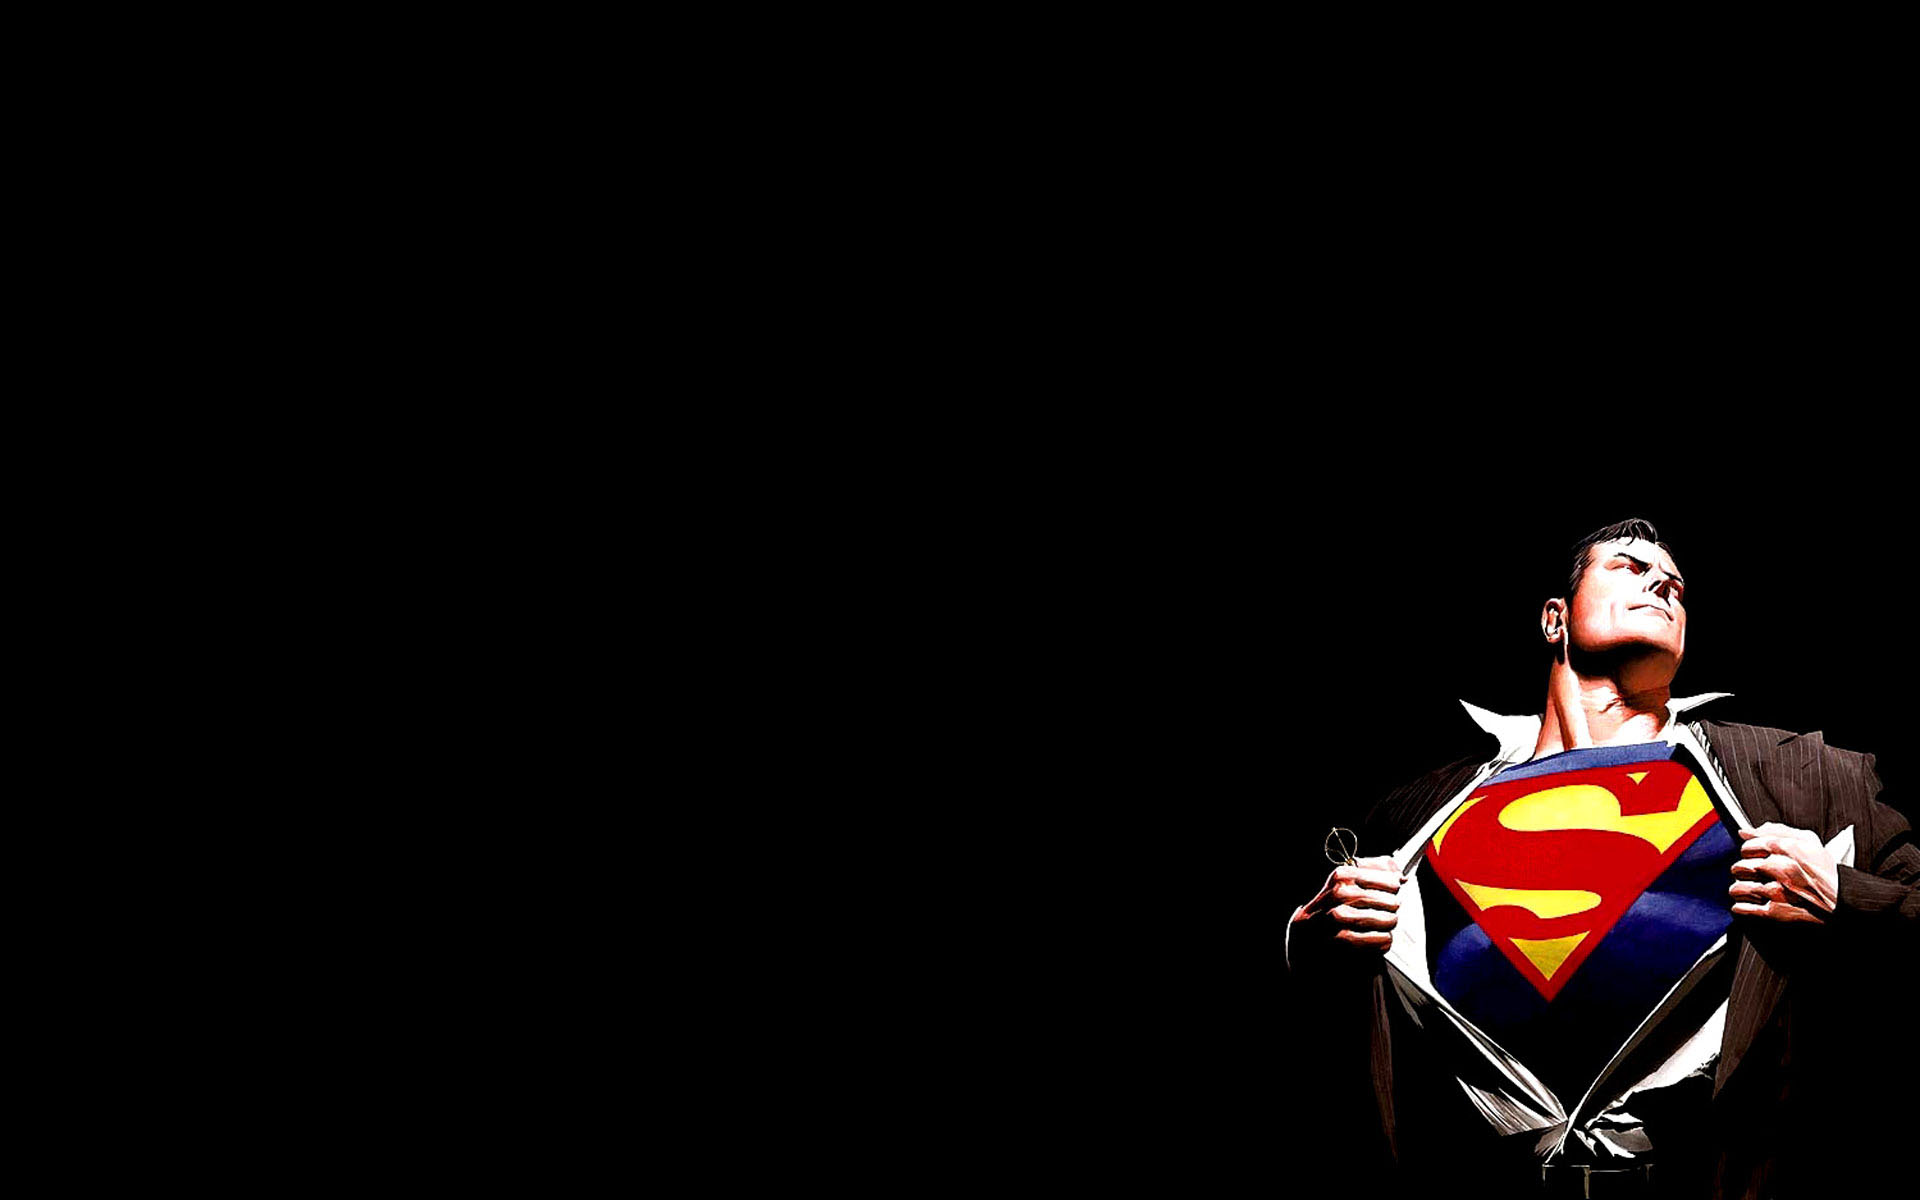 Superman Wallpaper HD Wallpupcom 1920x1200